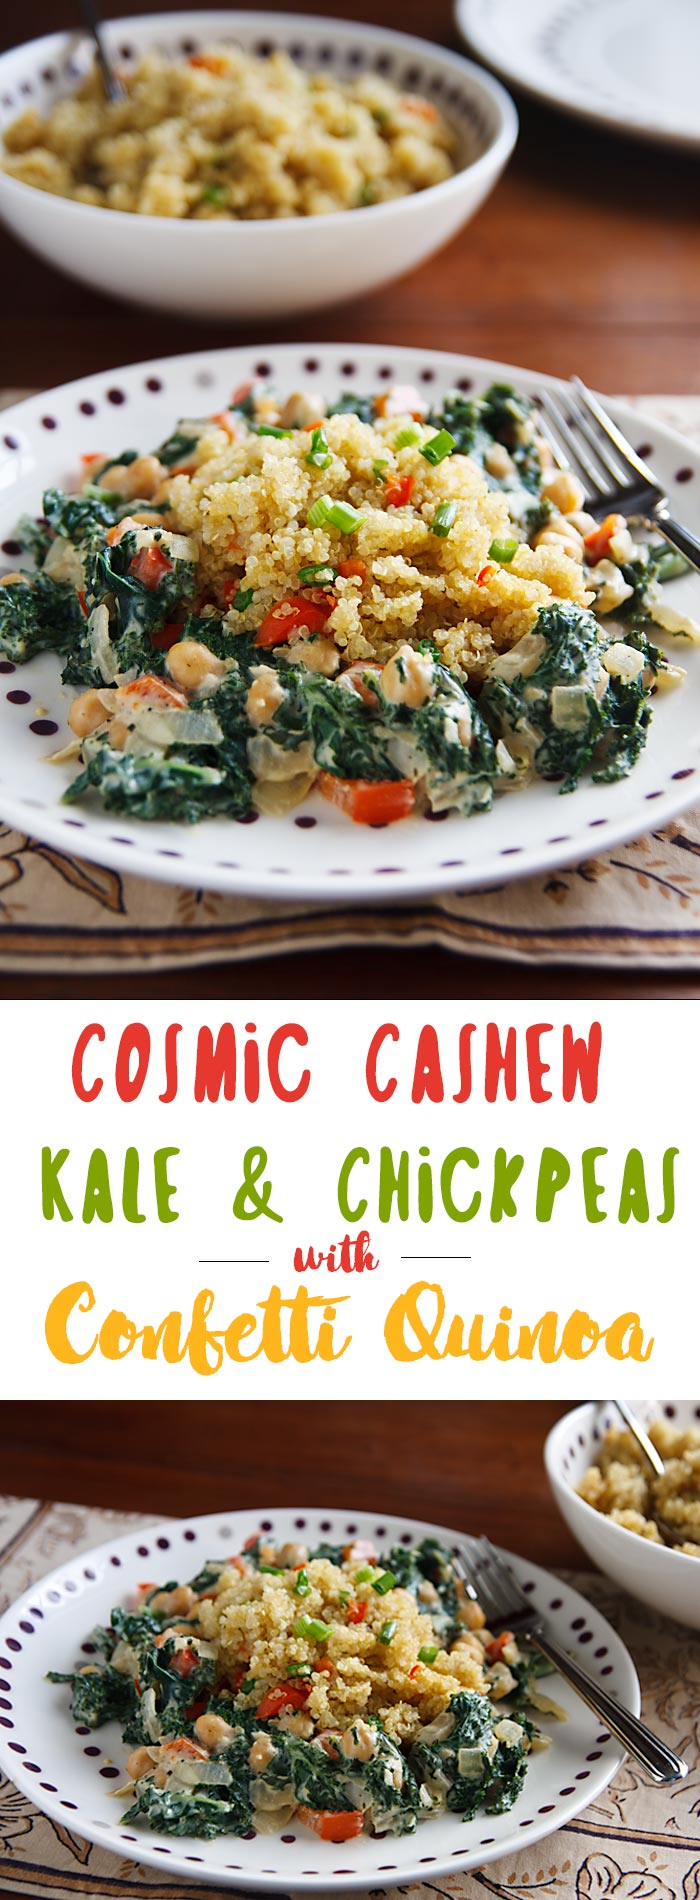 Creamy kale and chickpeas with cashew sauce goes perfectly with this easy, colorful quinoa. Vegan and gluten-free!